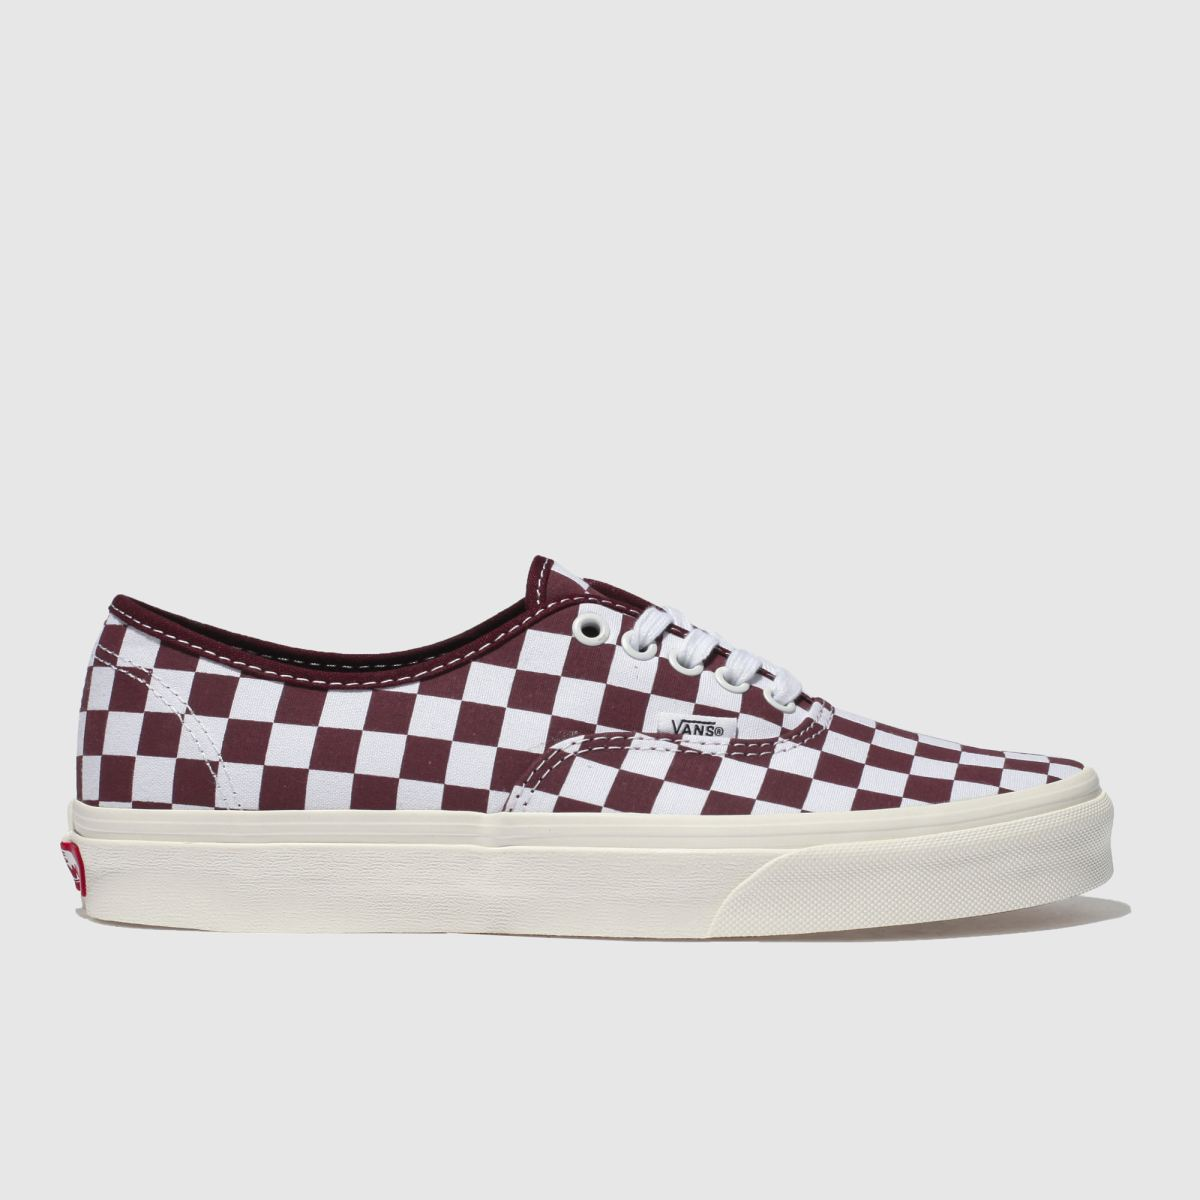 Vans White & Burgundy Authentic Trainers